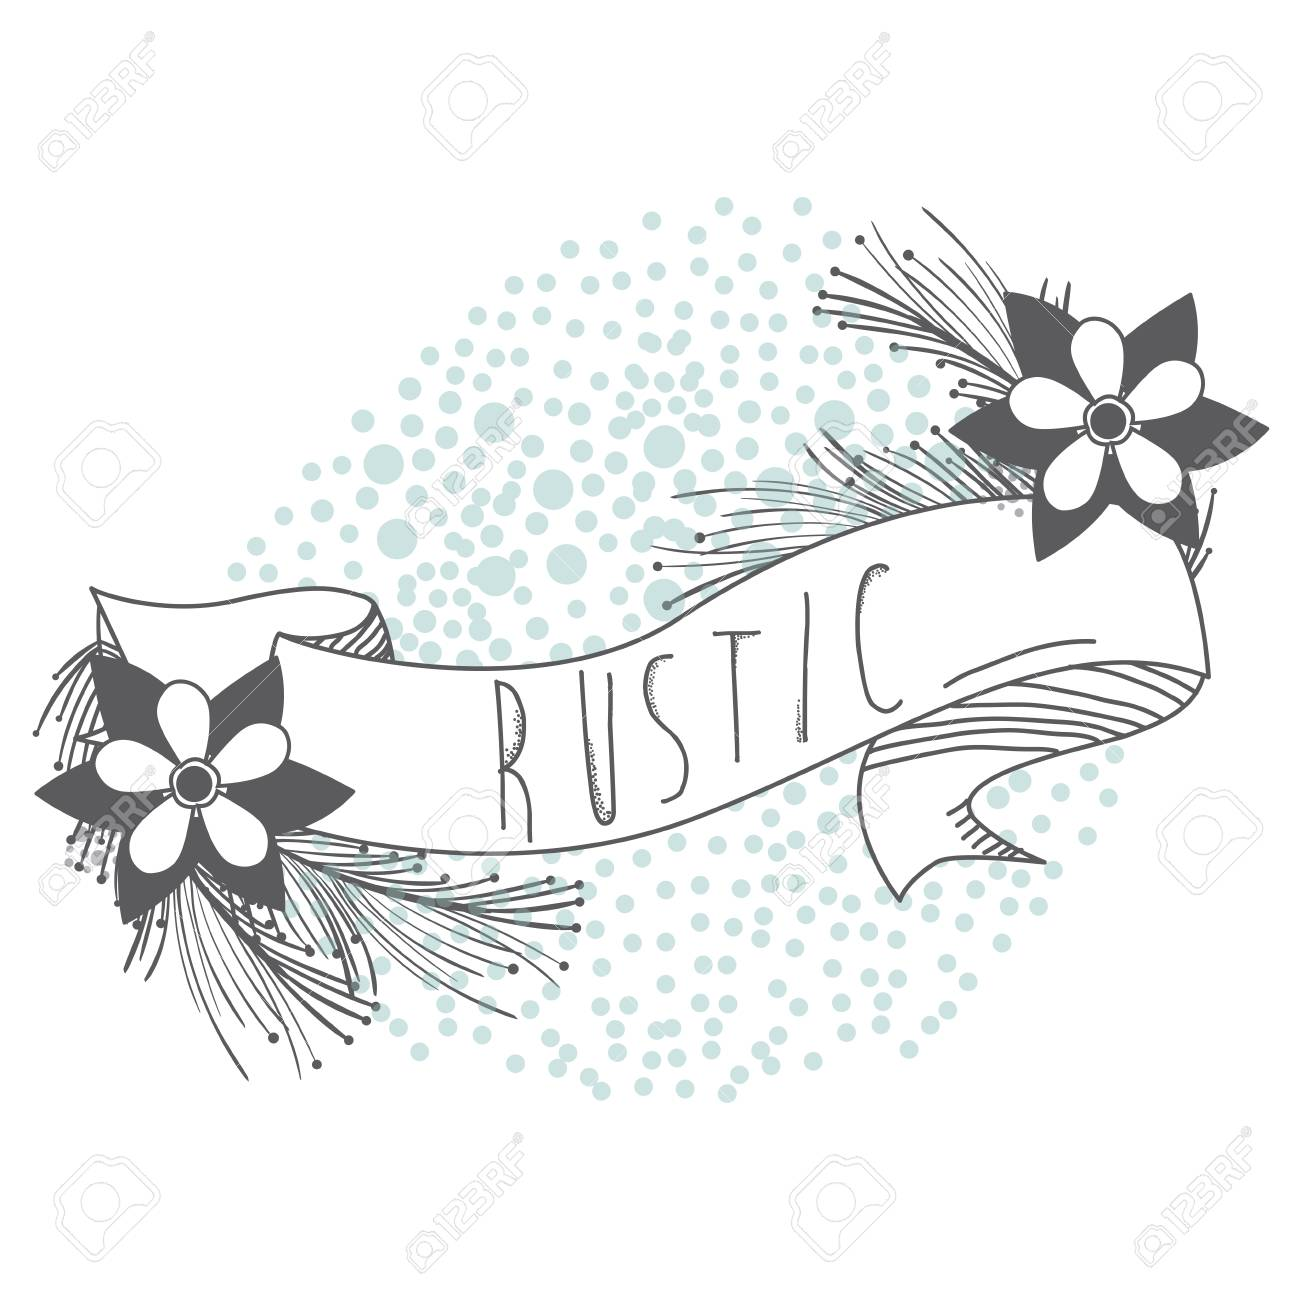 Rustic Ribbon Banner With Flowers Hand Drawn Icon Vector Illustration Graphic Design Stock